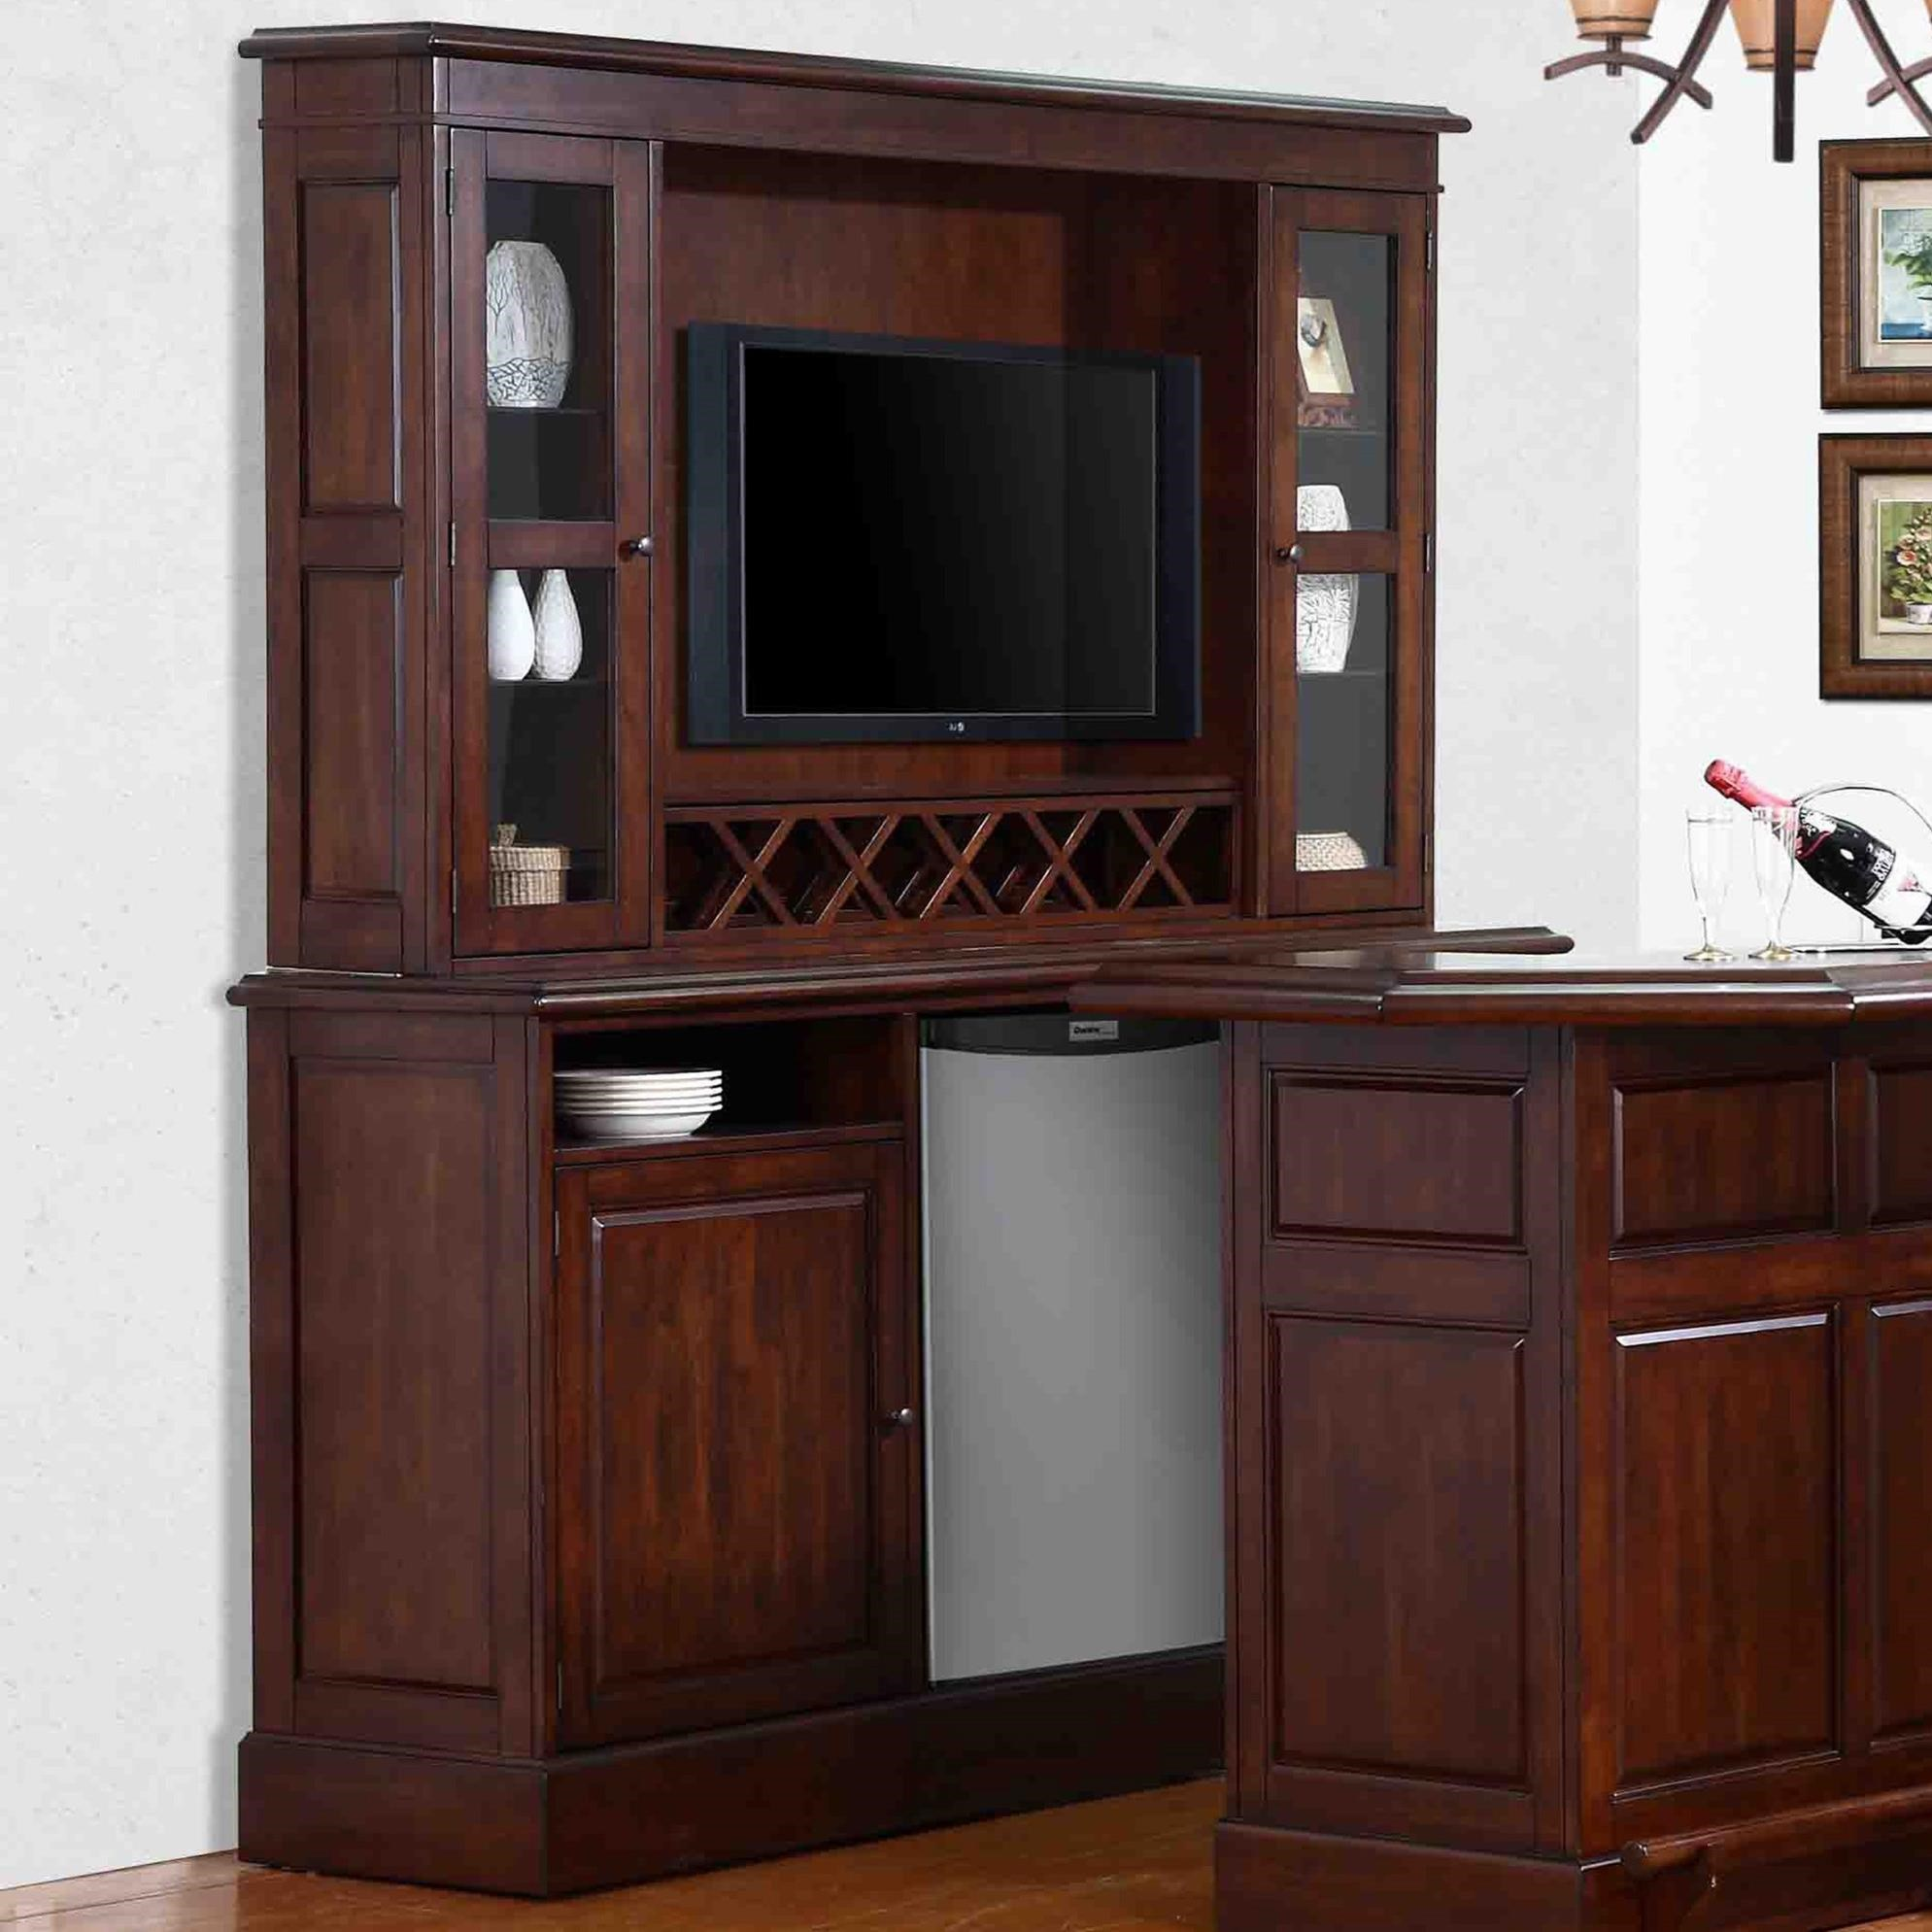 Belvedere-0411 Back Bar Base + Hutch by E.C.I. Furniture at Northeast Factory Direct